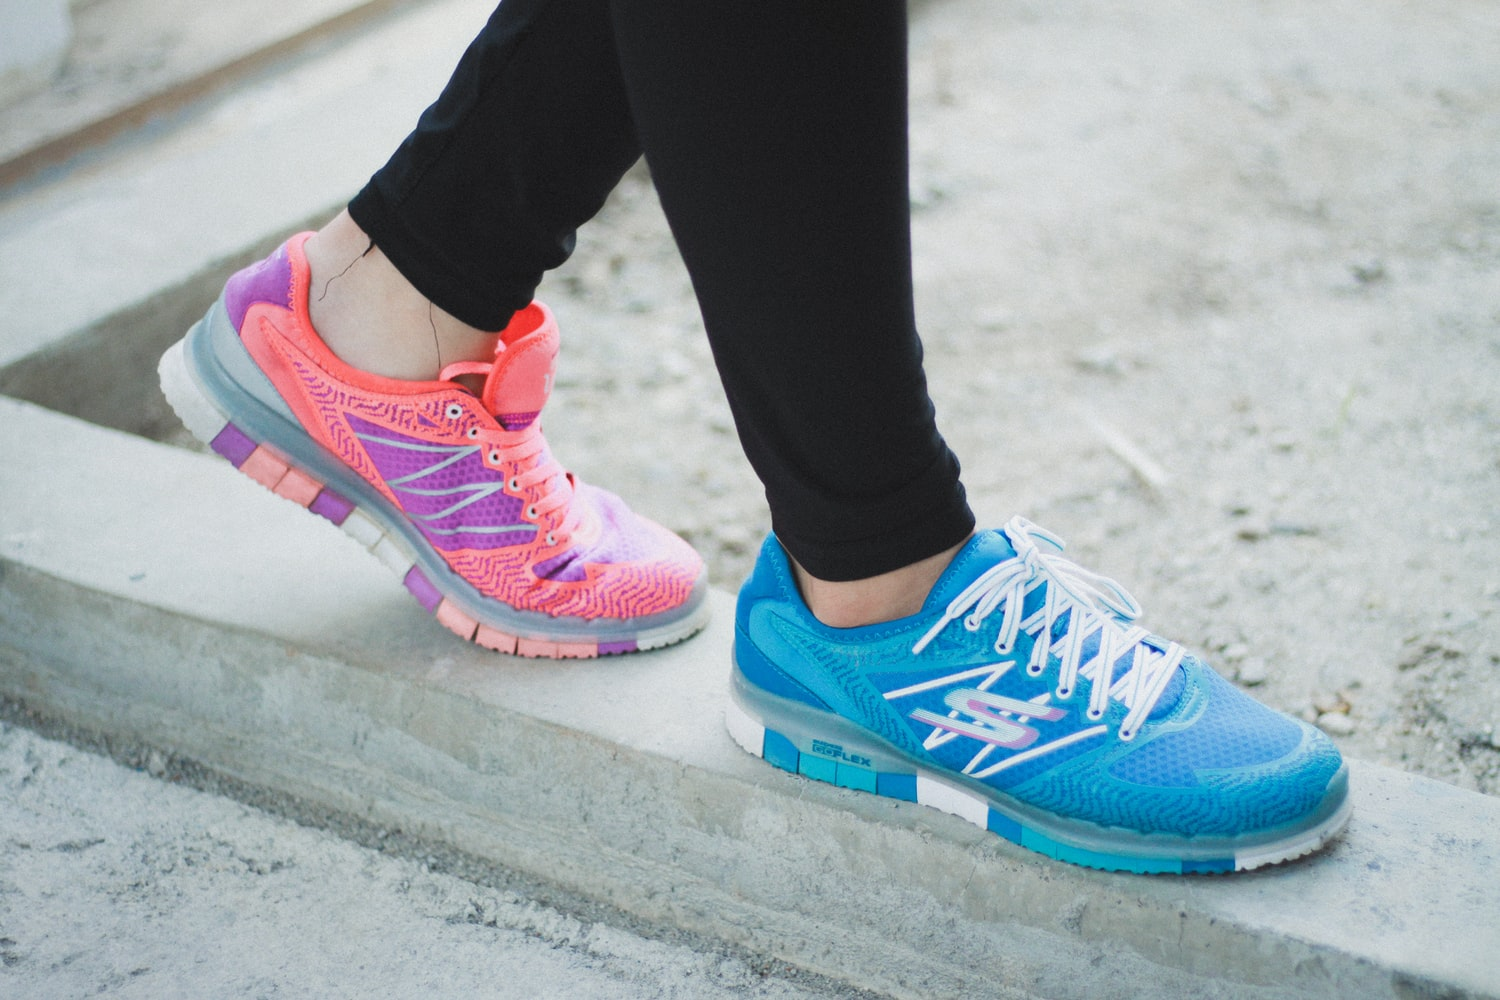 12 Best Stability Running Shoes Women's | Features of Stability Running Shoes